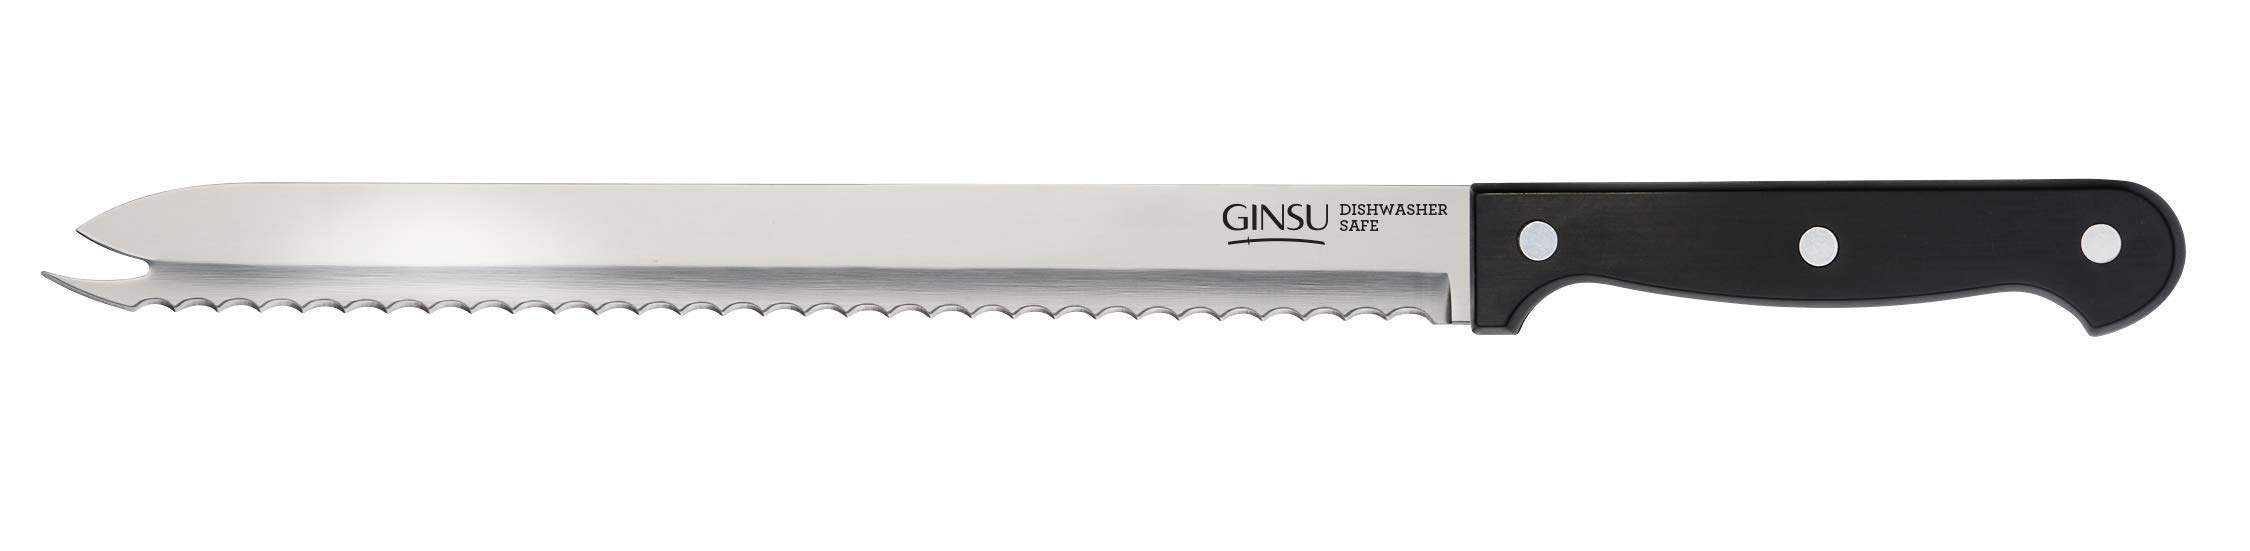 Ginsu KIS-KB-DS-001-1 Kiso Dishwasher Safe Original Slicer, 5''W x 14.25''H x 2.5''D, Black by Ginsu